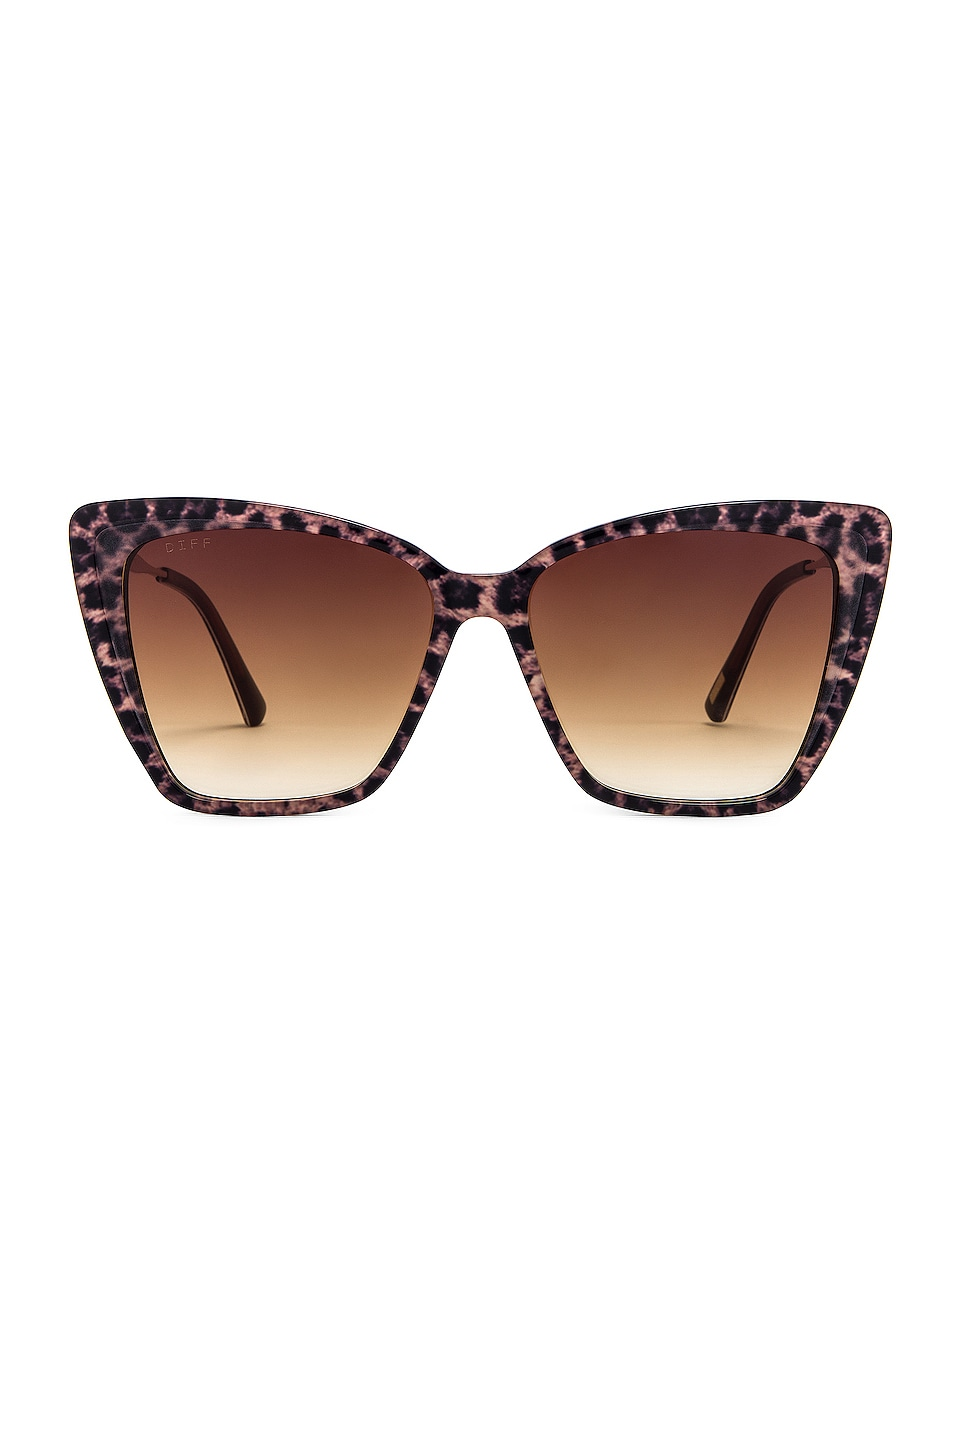 DIFF EYEWEAR Becky II in Leopard & Brown Gradient